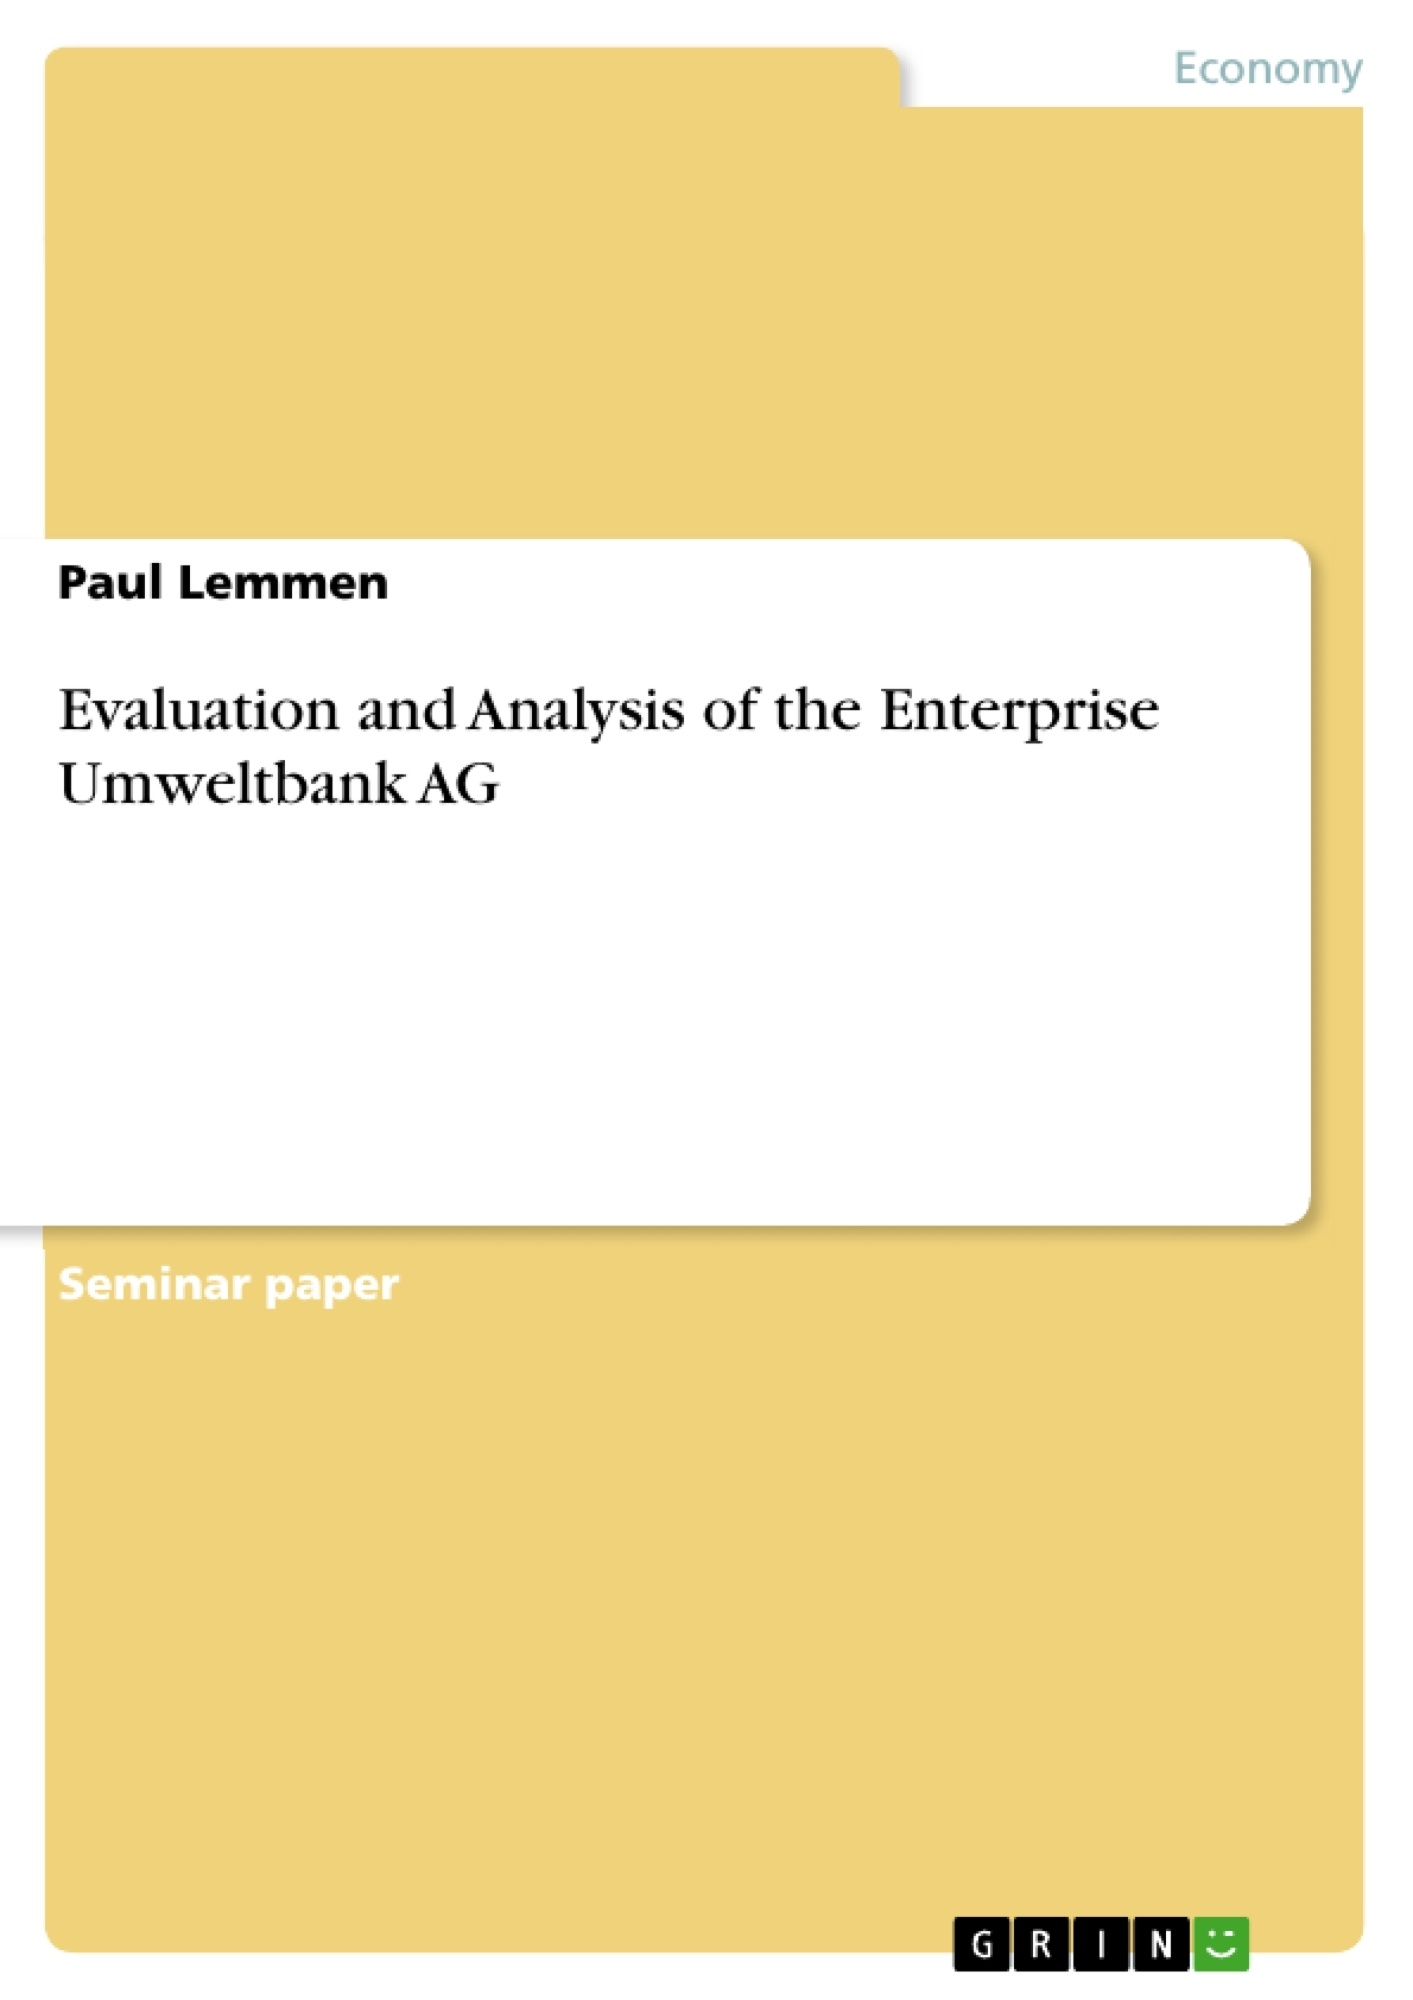 Title: Evaluation and Analysis of the Enterprise Umweltbank AG